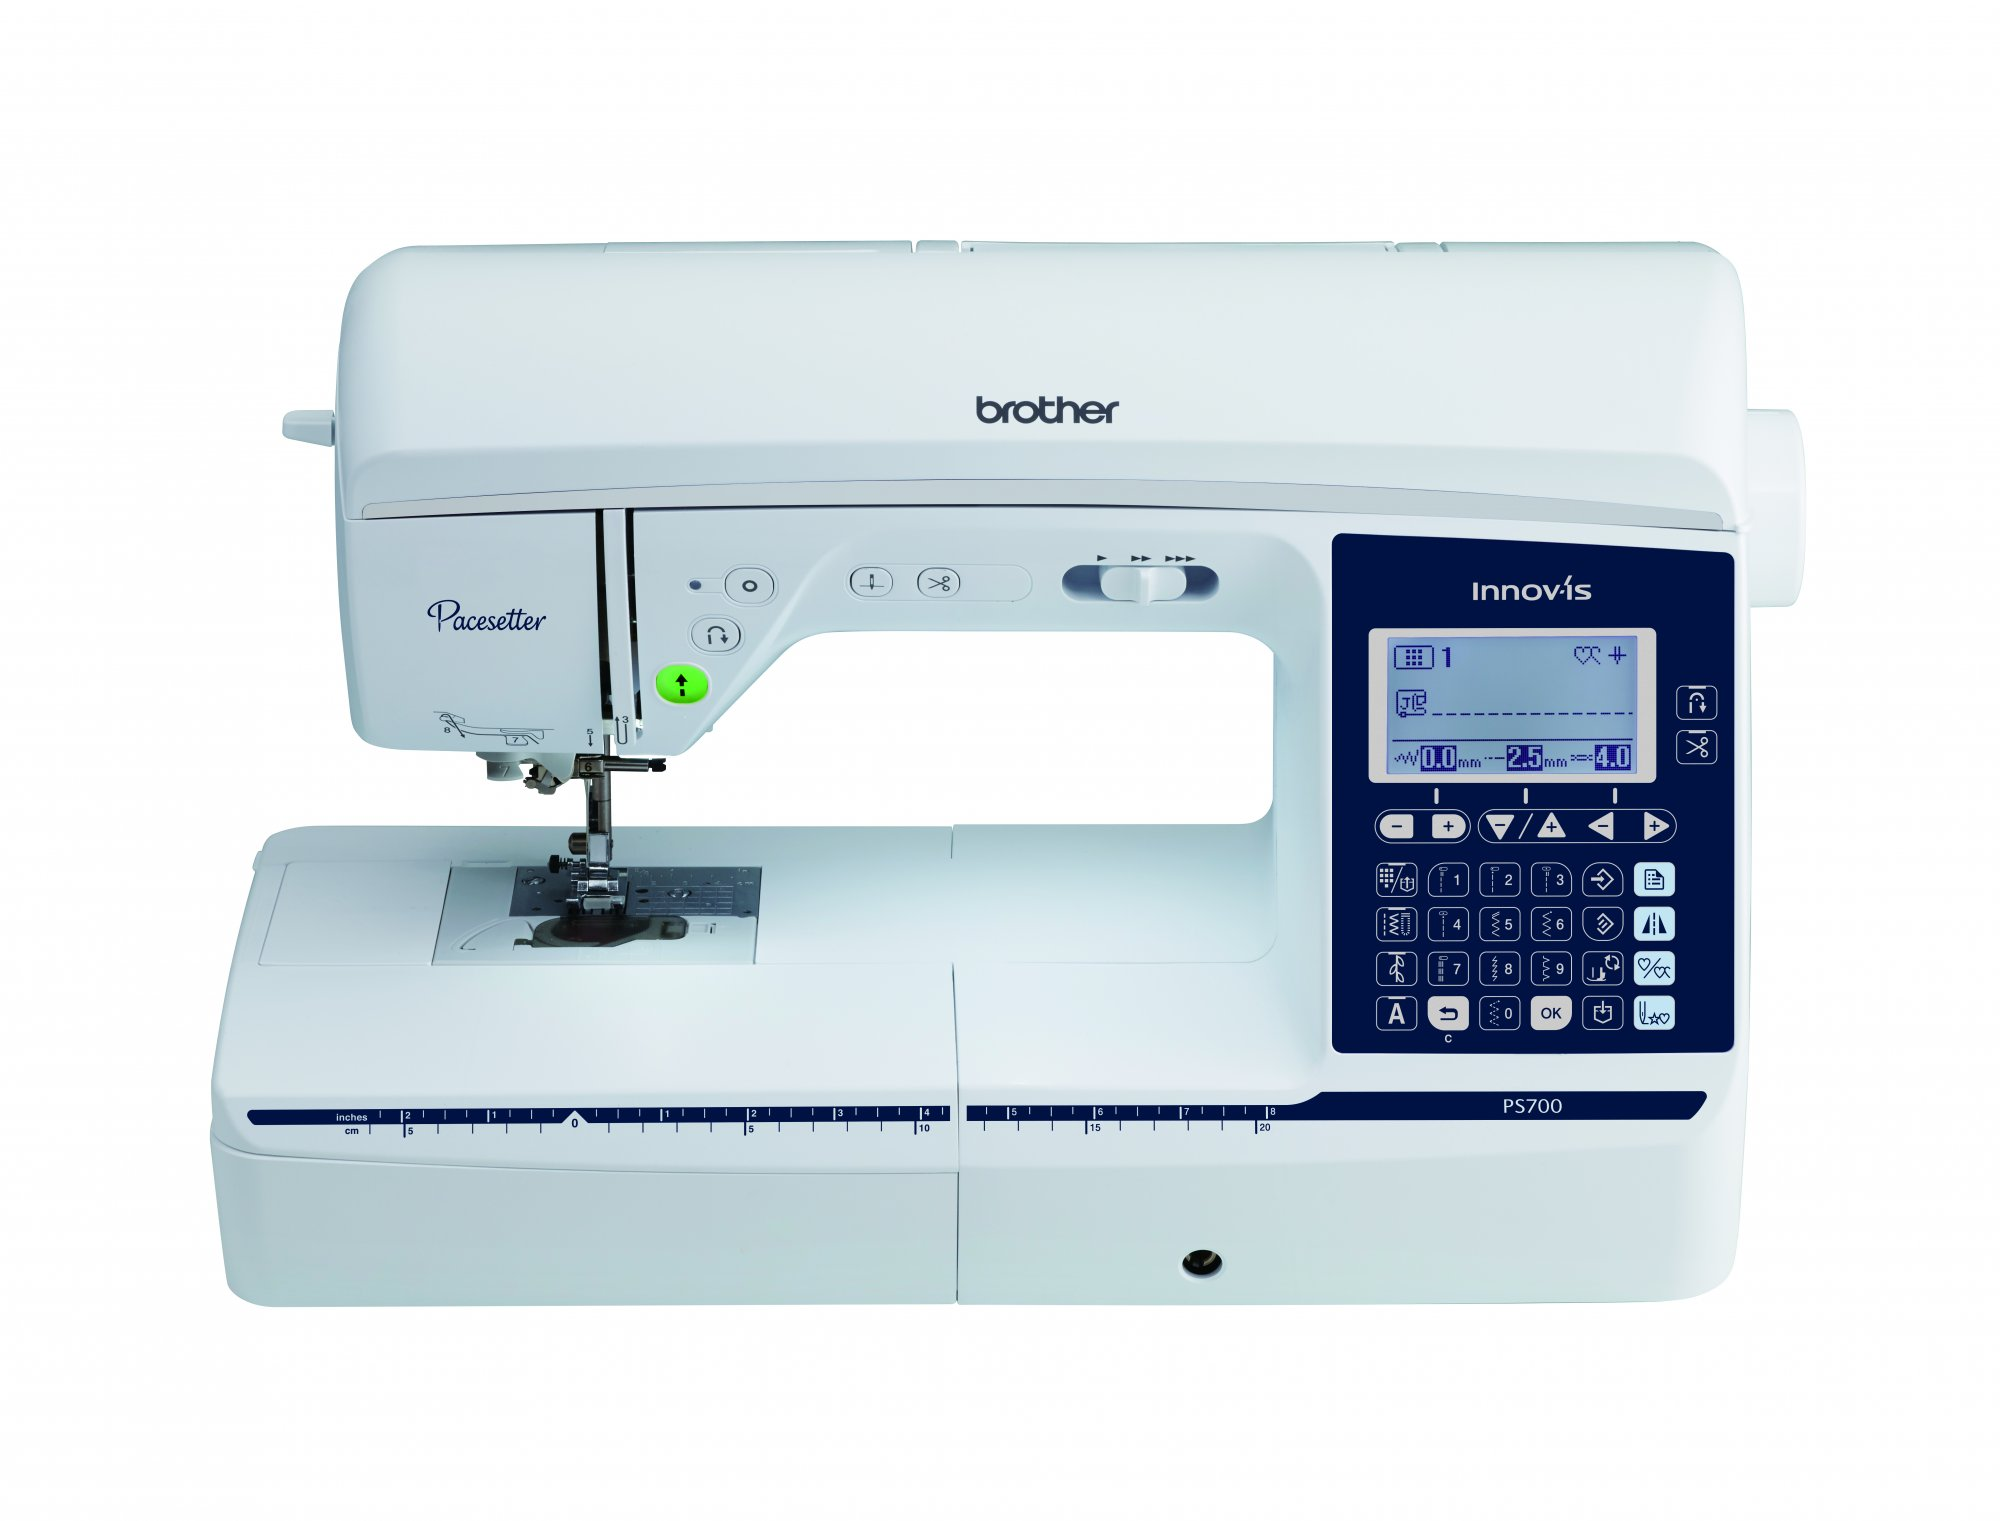 Brother Innovis PS700